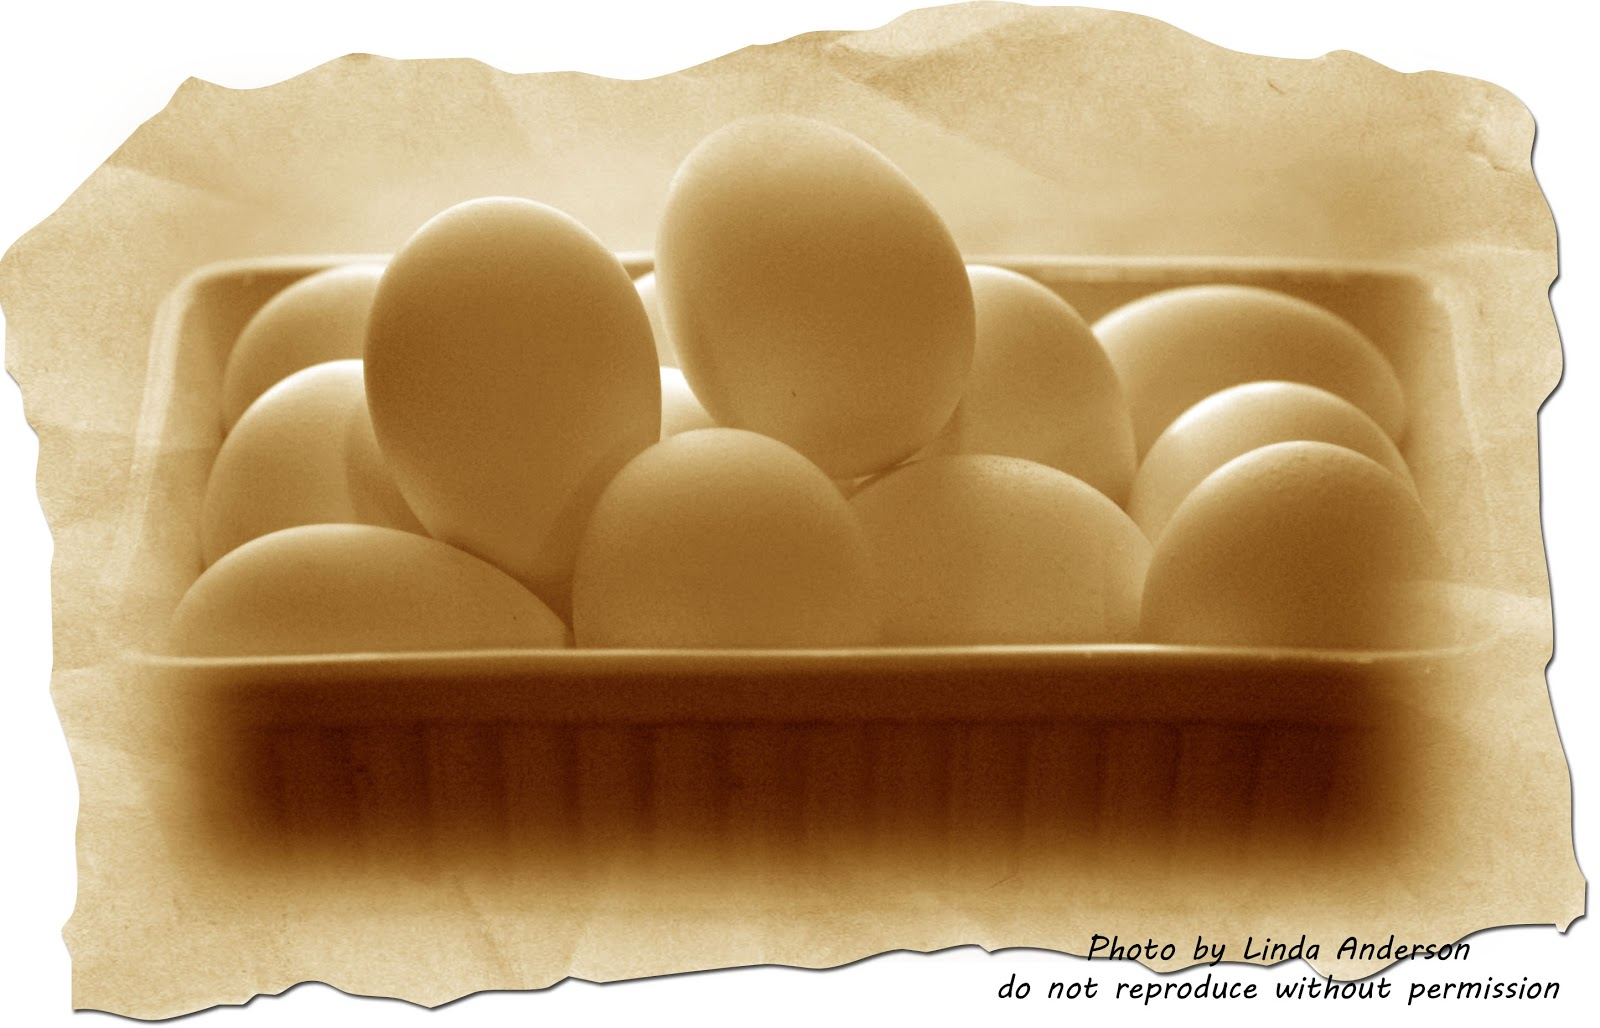 Dehydrating way beyond jerky the egg issue do we or dasnt we they range from raw eggs to scrambled eggs to boiled eggs when i first encountered them my salmonella gong ccuart Images